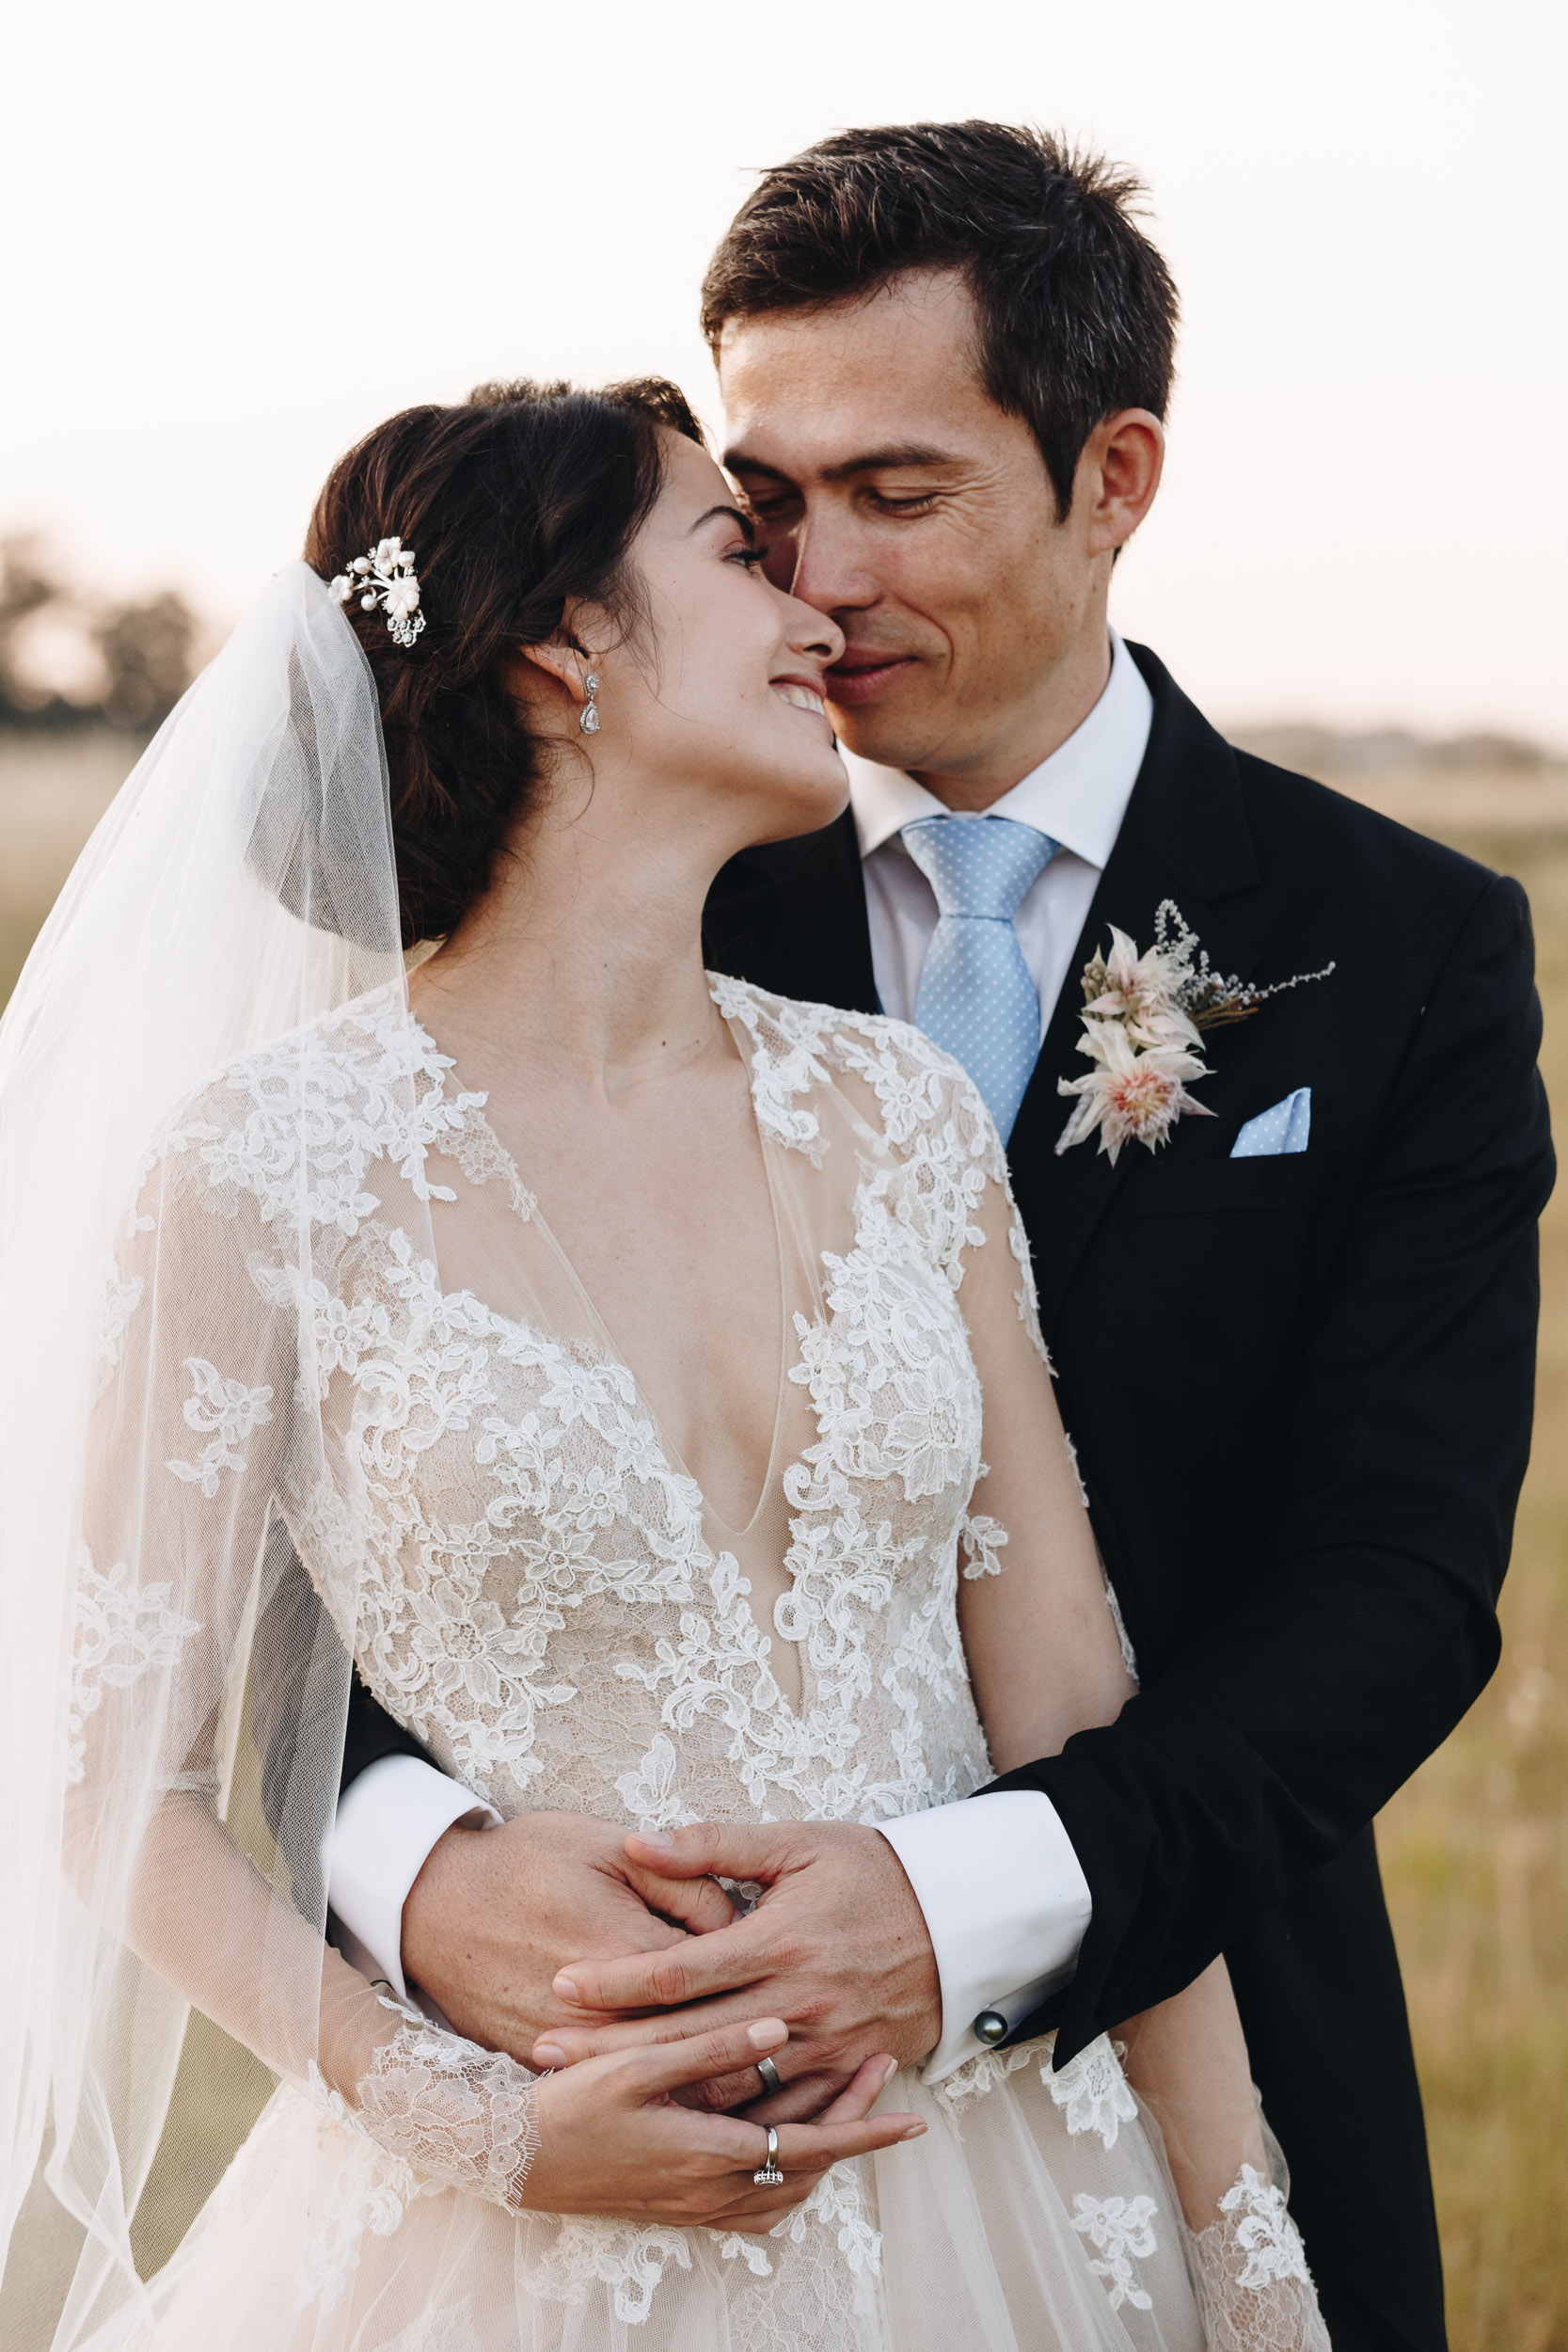 Jenny-Rockett-John-Scranton-Cape-Town-Wedding-Photographer-Andrea-Kellan-175.jpg